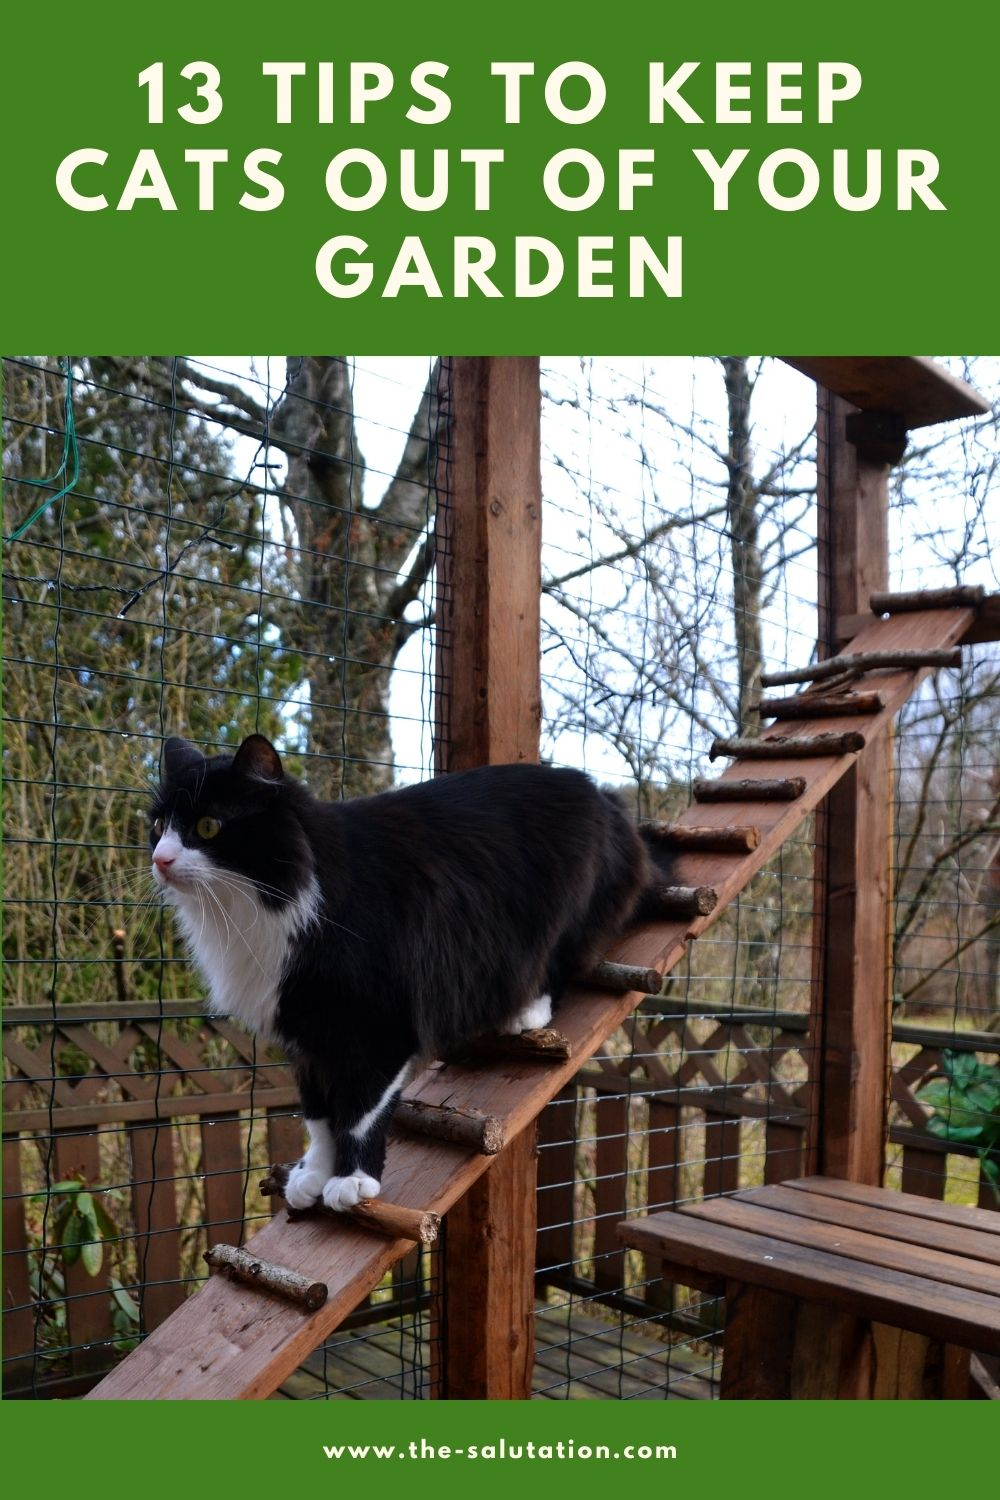 13 Tips to Keep Cats Out of Your Garden 1